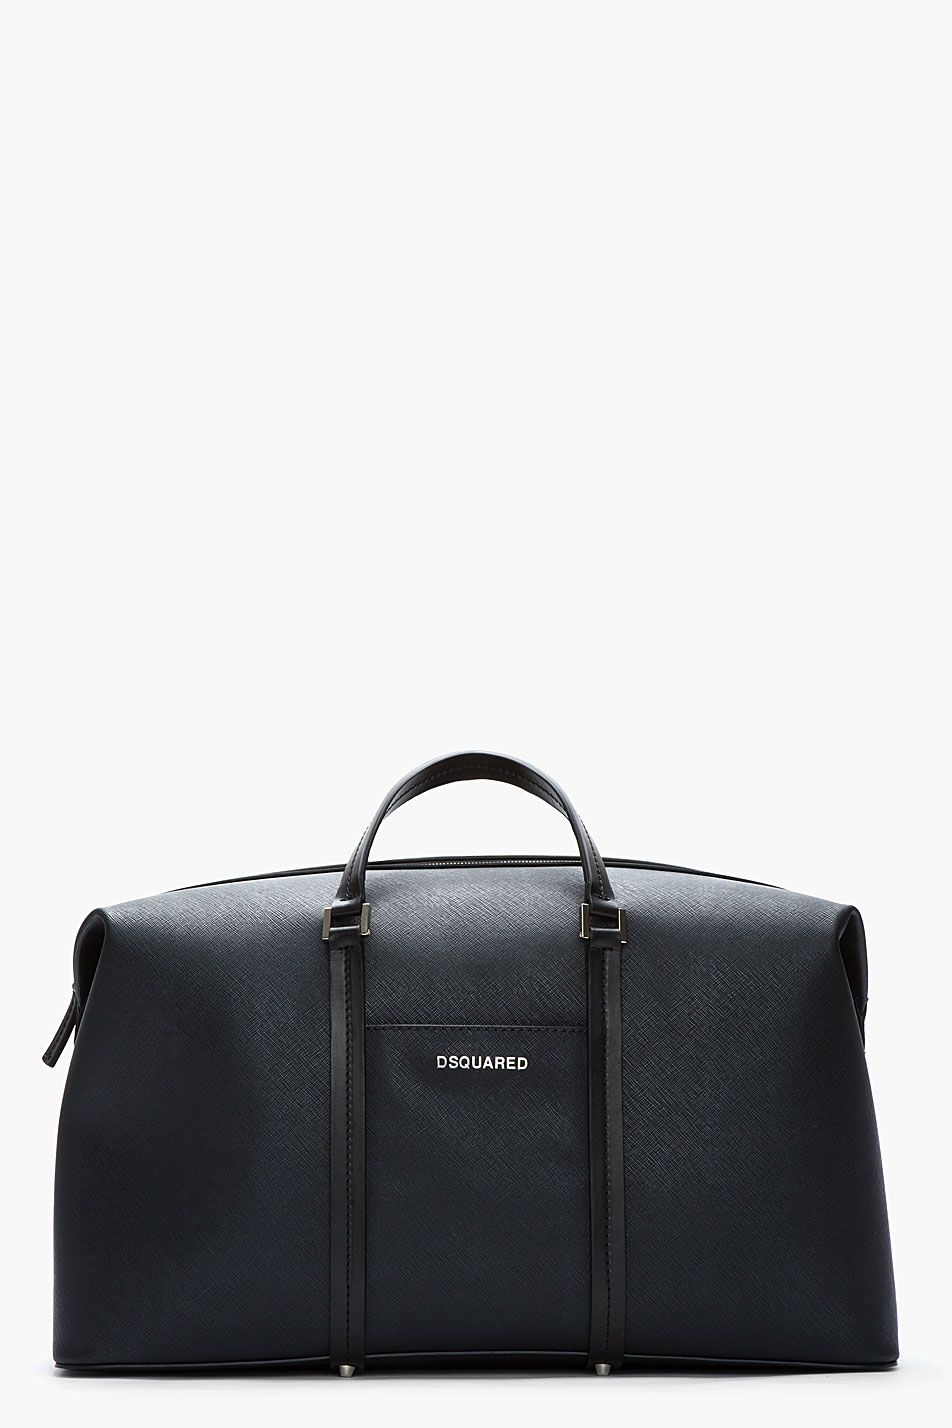 564a0cbe0be2 DSQUARED2 Black Patent Grained Structured Dante Duffle Bag